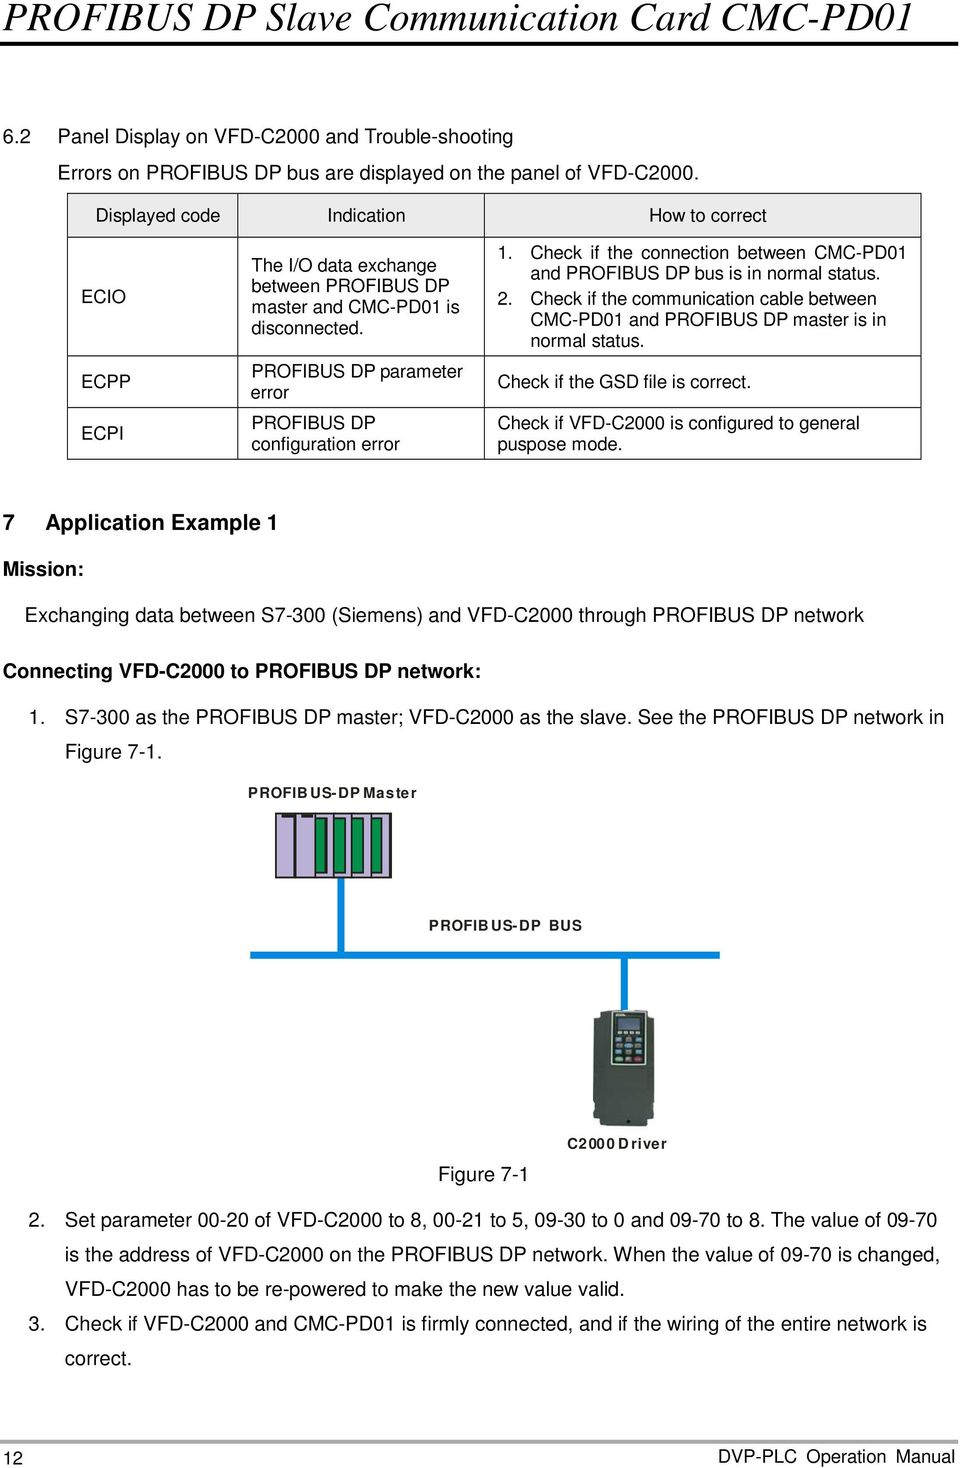 Check if the connection between CMC-PD01 and PROFIBUS DP bus is in normal status. 2. Check if the communication cable between CMC-PD01 and PROFIBUS DP master is in normal status.